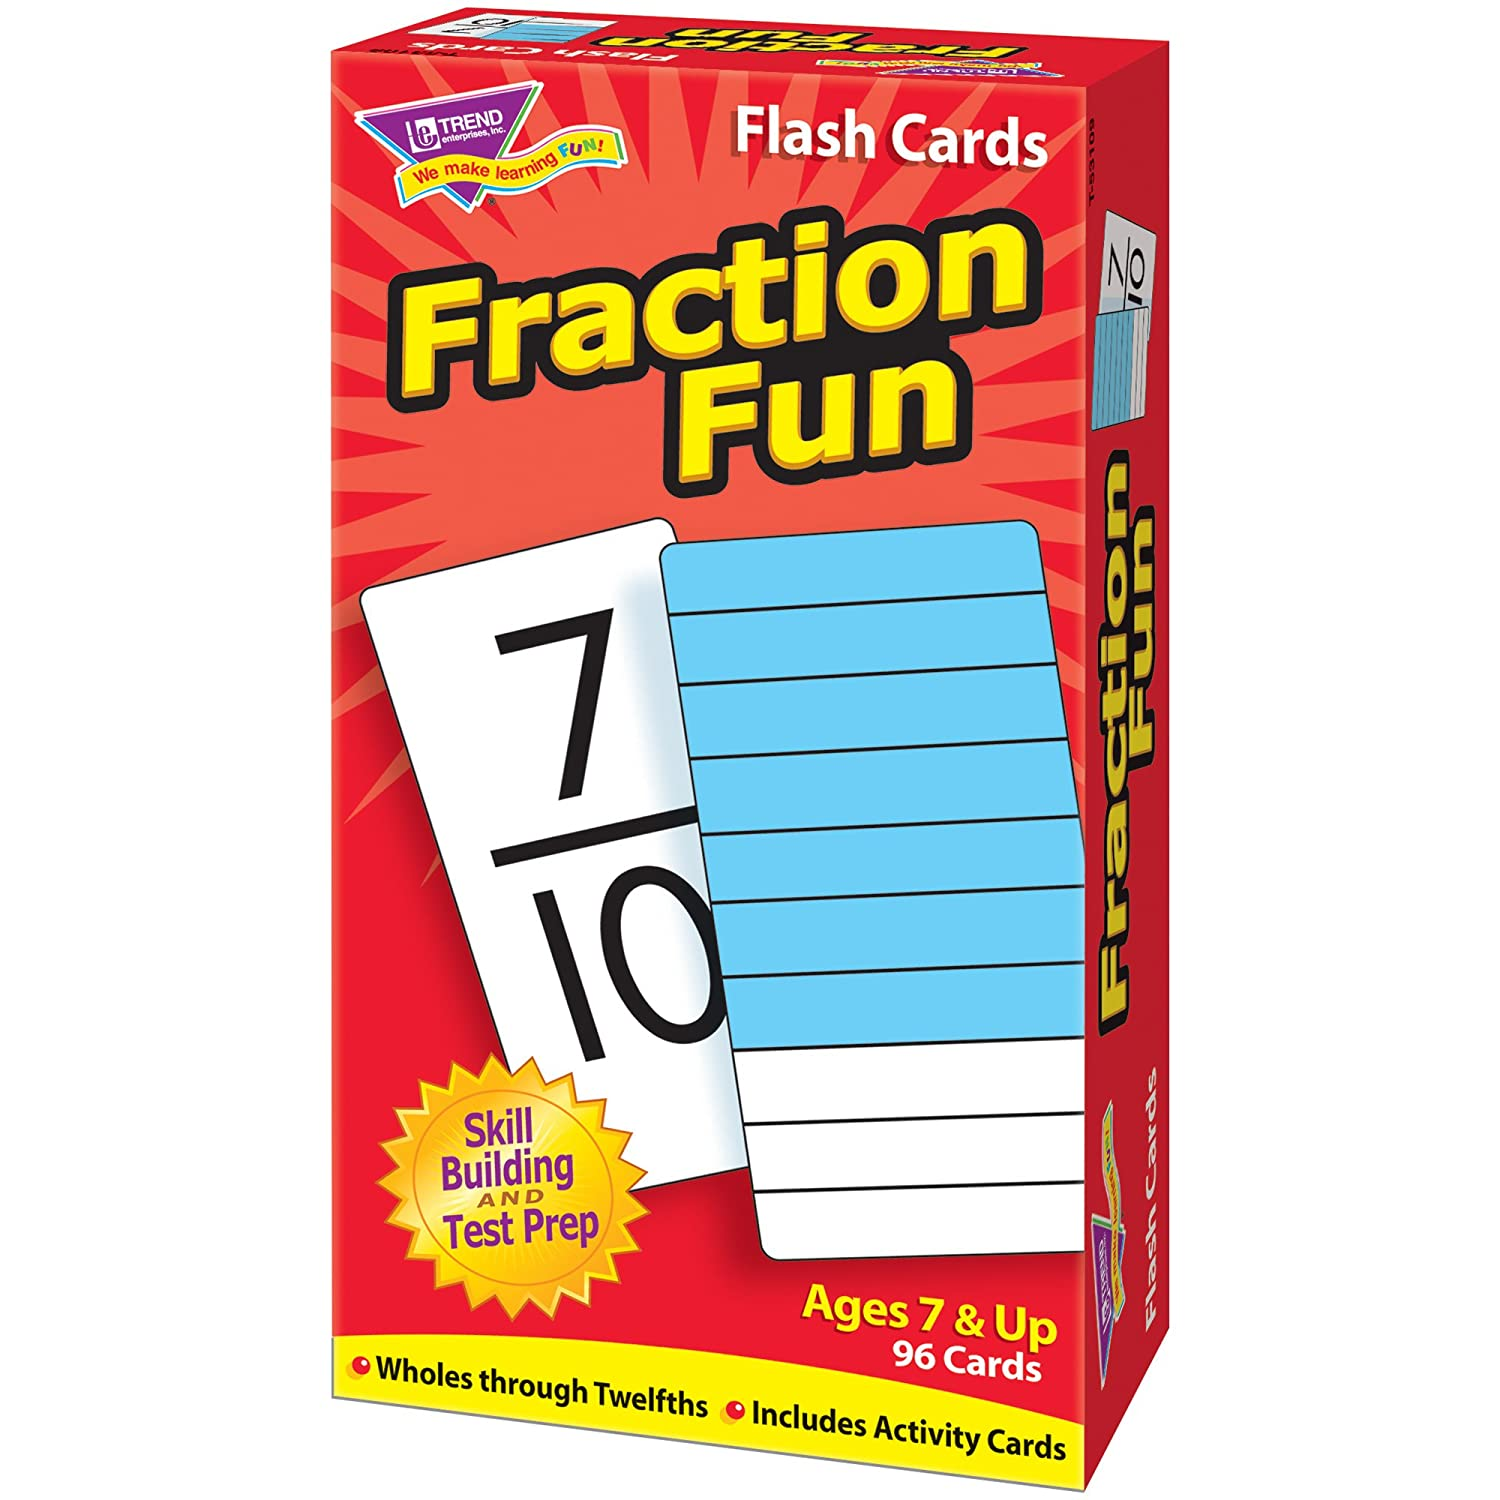 Amazon.com: Fraction Fun Flash Cards: Toys & Games